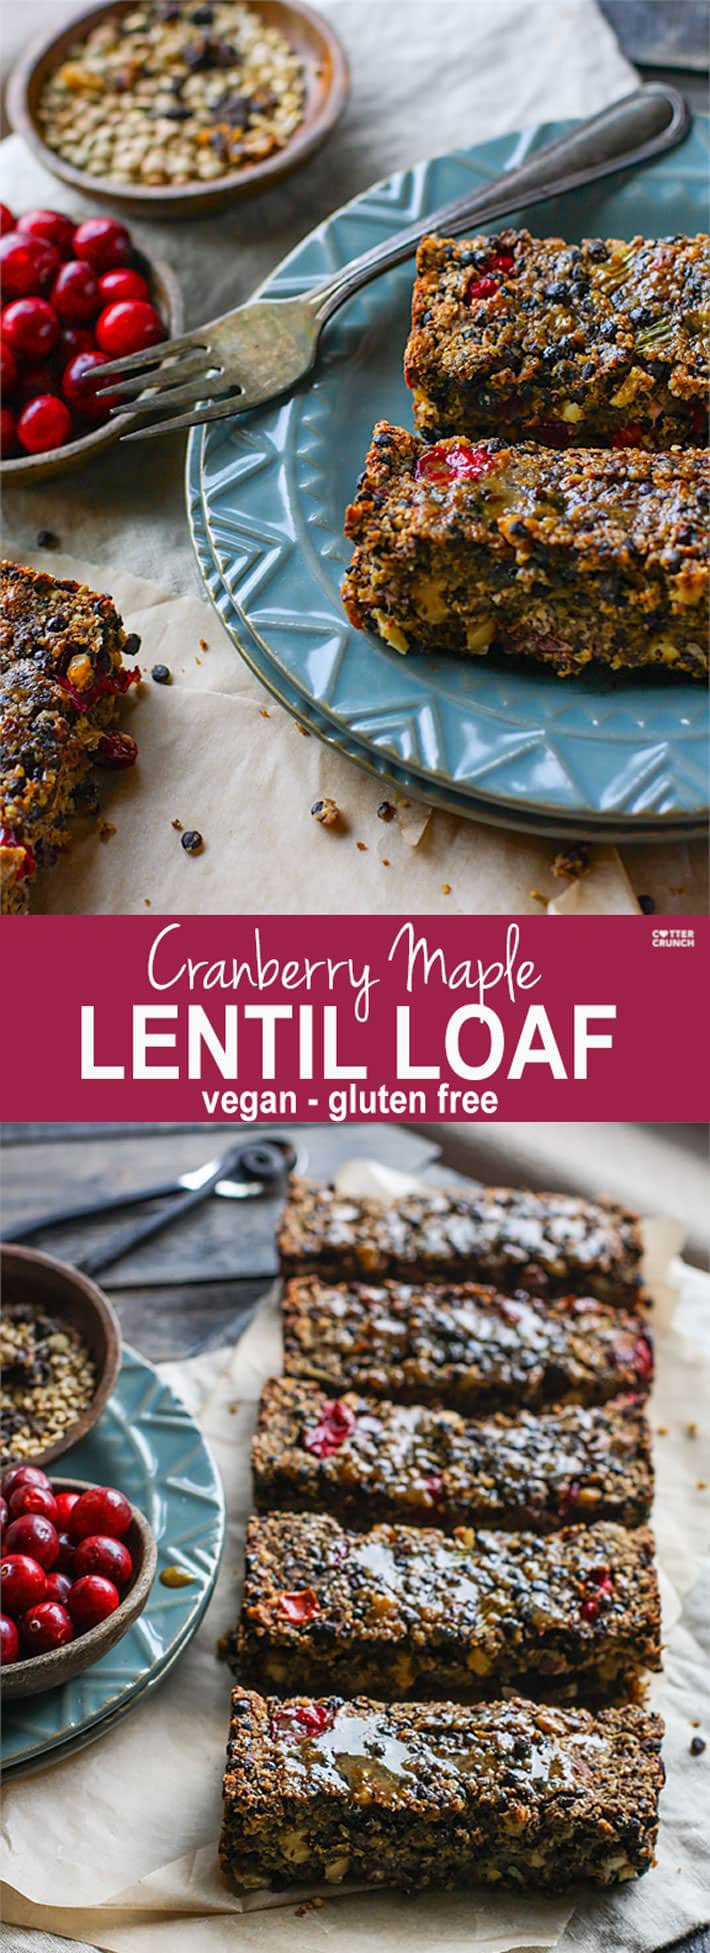 Gluten free Vegan Cranberry Maple Lentil loaf! A great dish to add to your Holiday table. Lentils, fresh cranberries, nuts, and sautéed veggies all baked up into one healthy and delicious lentil loaf. The Maple glaze topping makes it even more flavorful. Super easy to make as a side dish or a main dish.